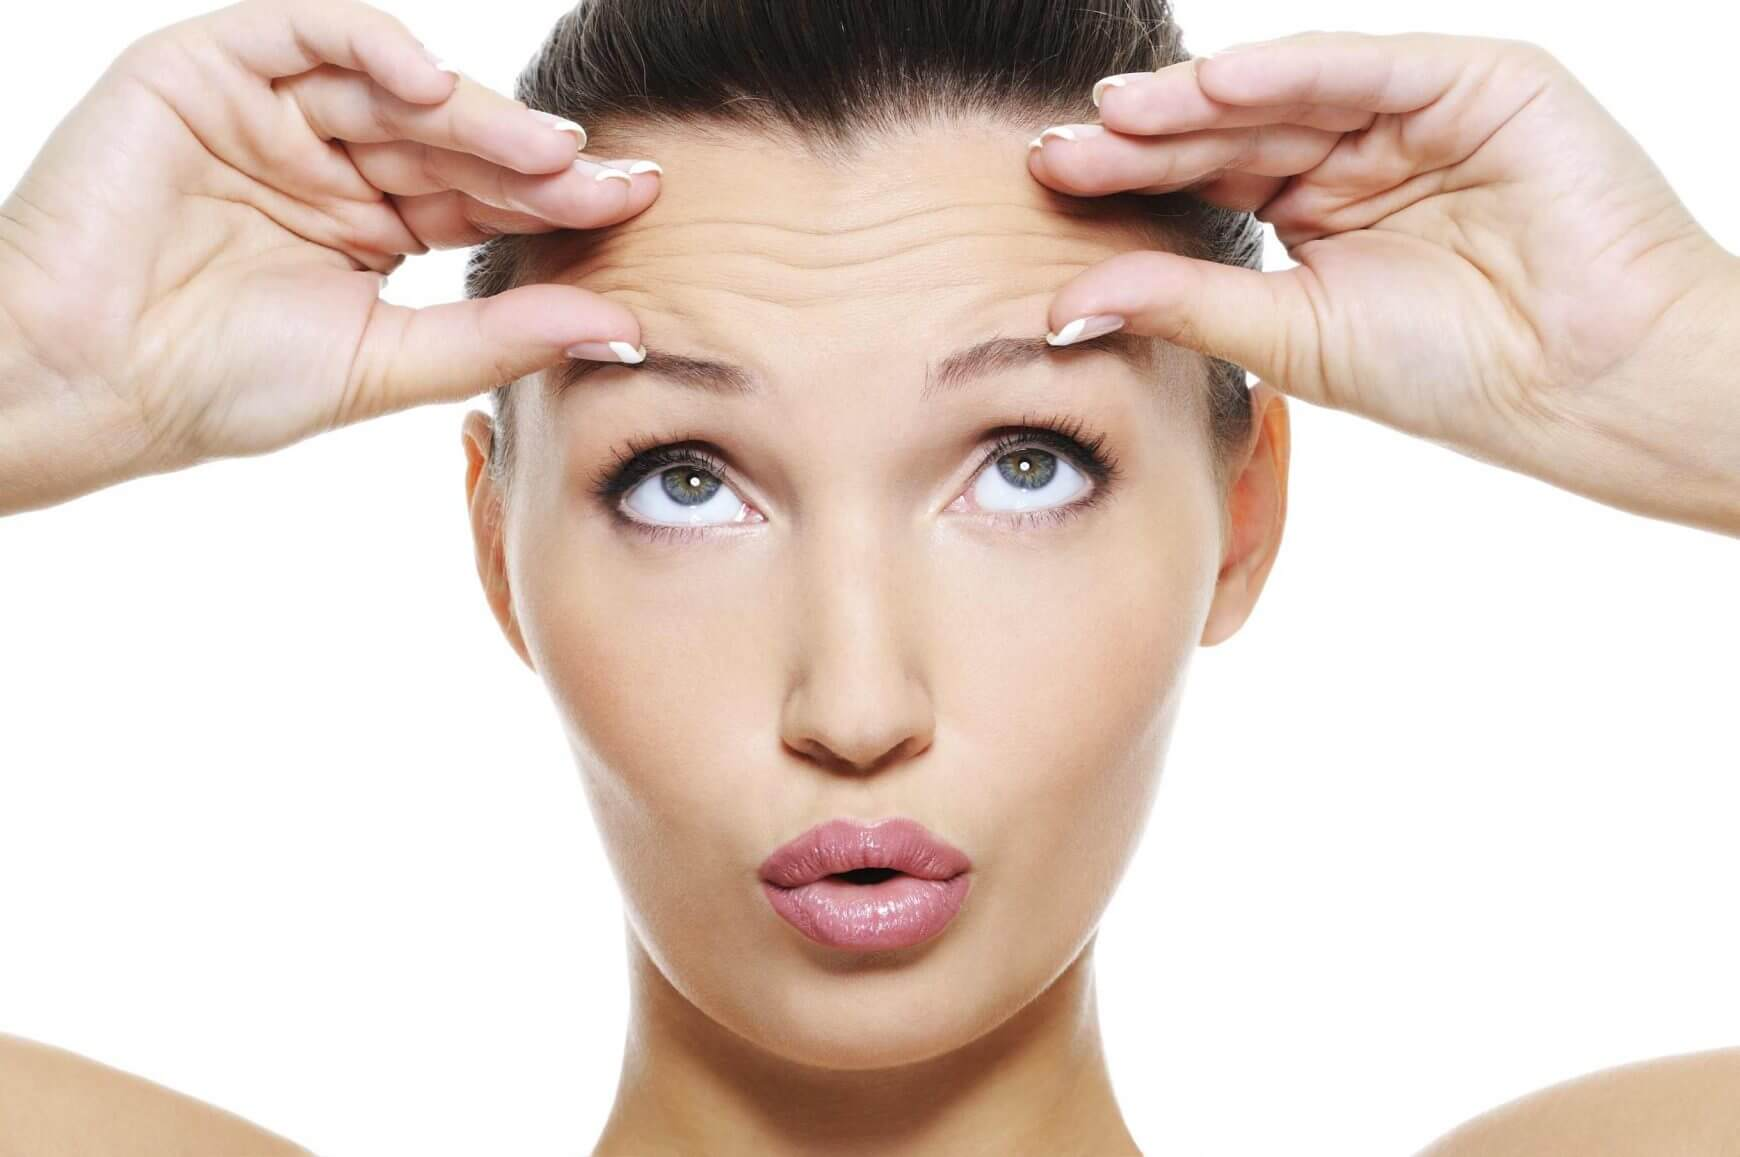 benefits of botox, Wrinkles, Worry Lines, and Crow's Feet: 12 Key Benefits of Botox